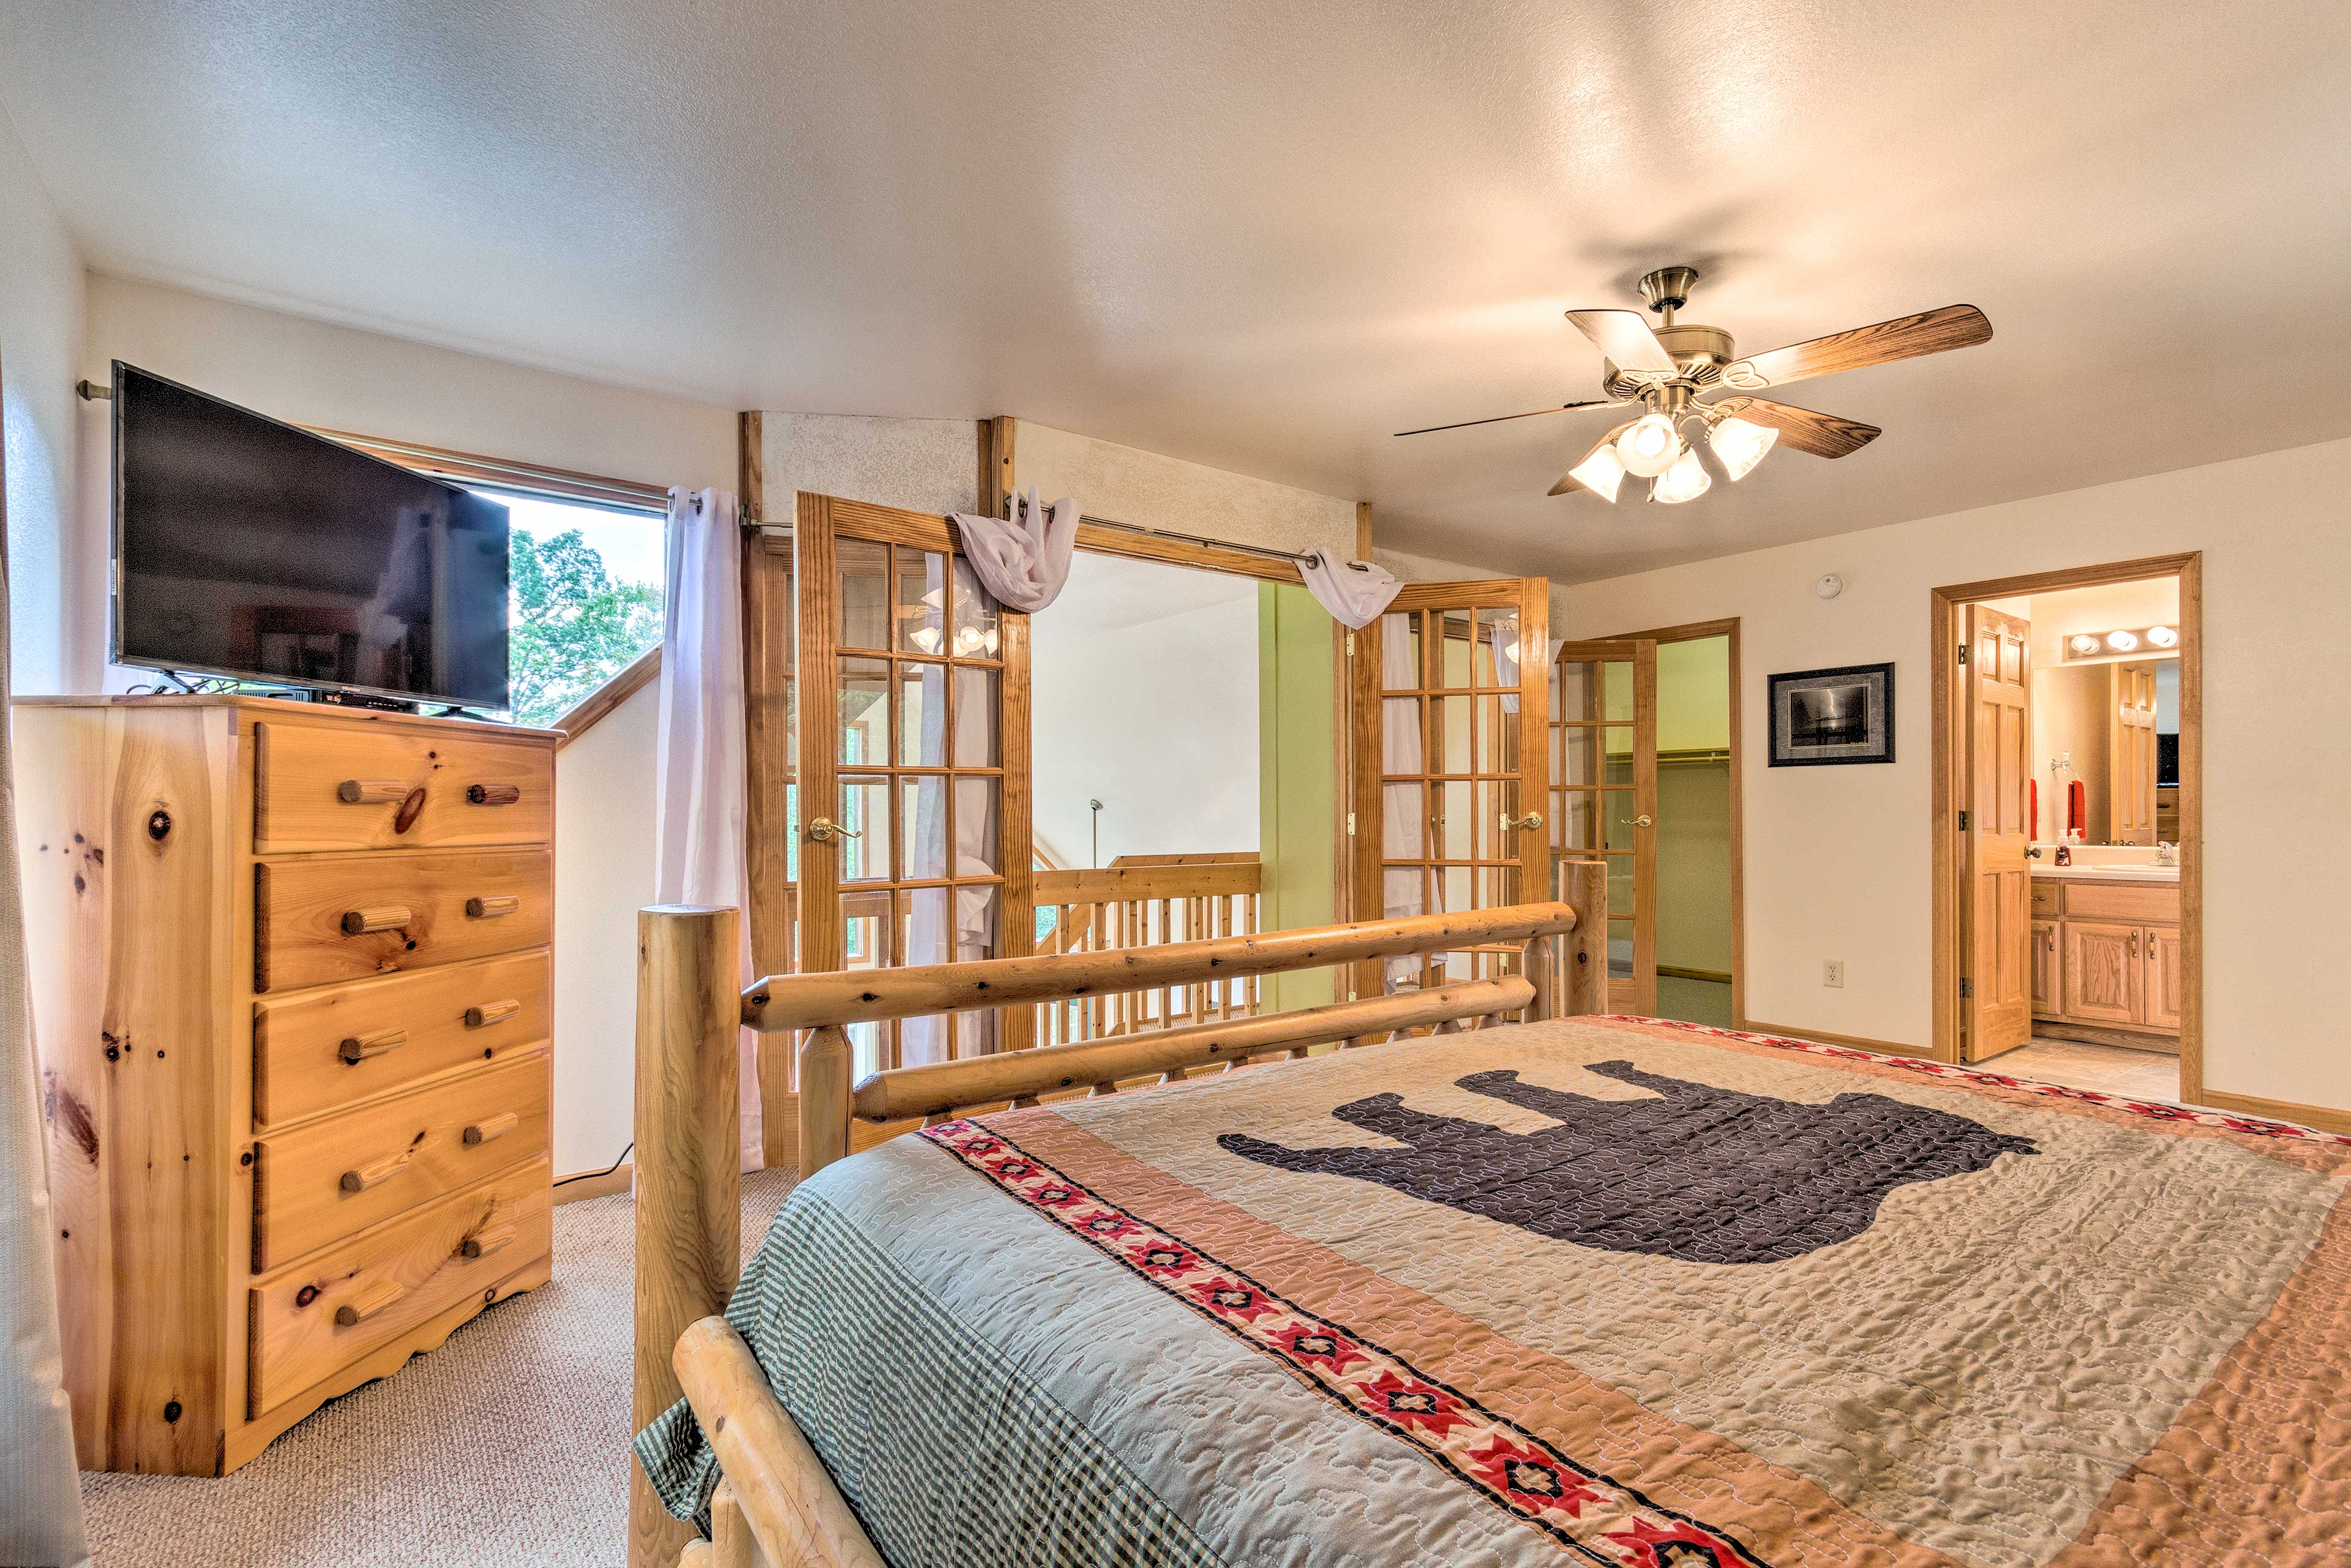 This room offers plenty of dresser space for all your vacation belongings.